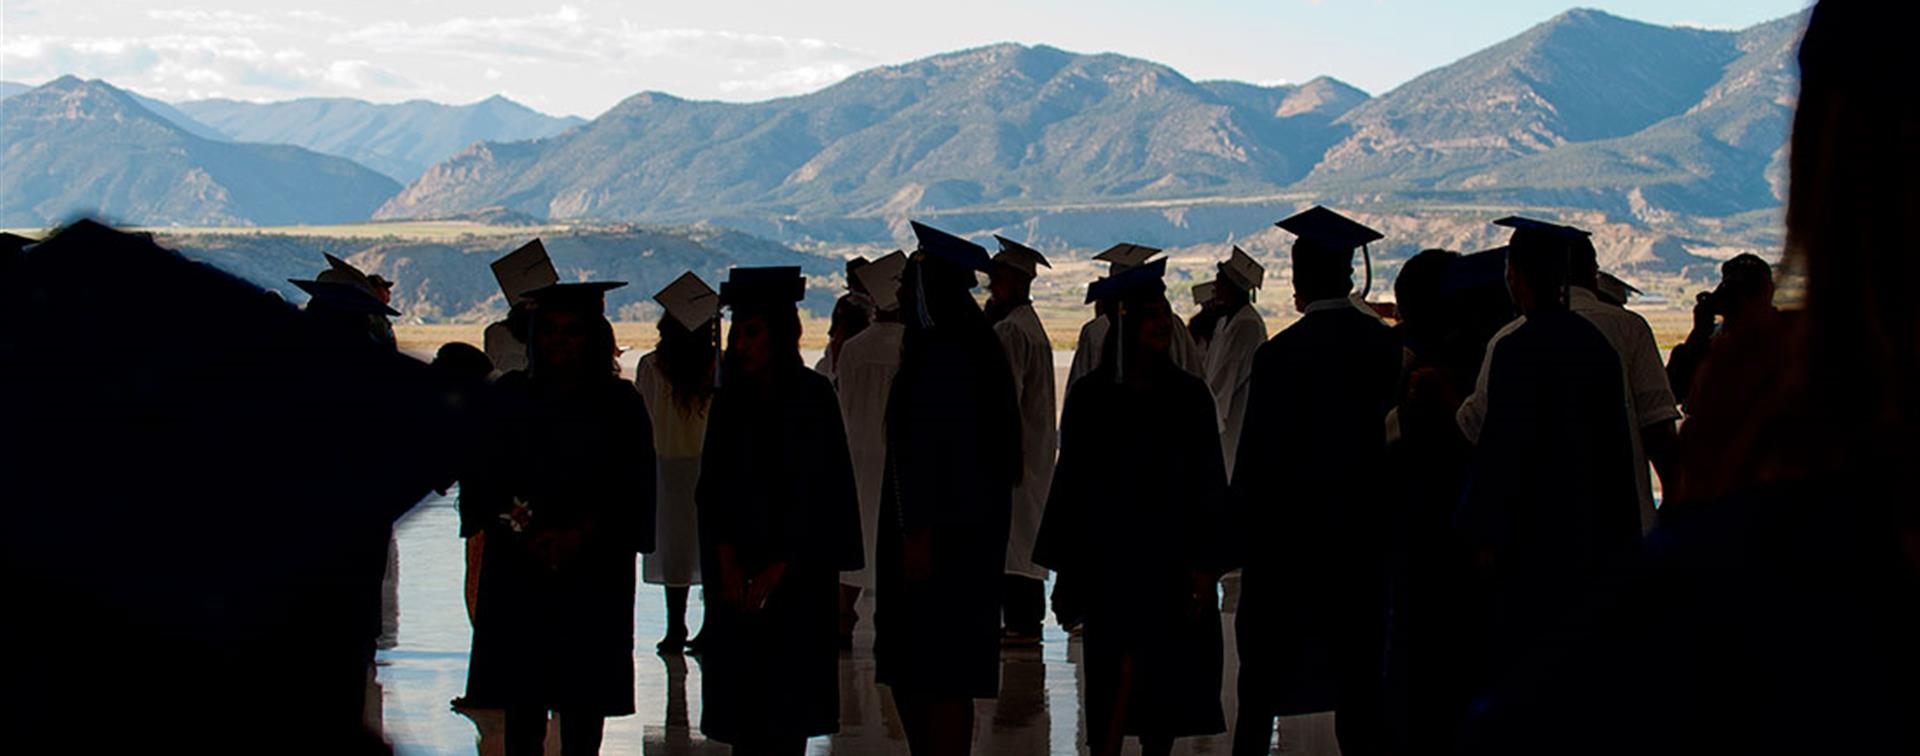 Colorado Mountain College graduates standing before a mountain backdrop